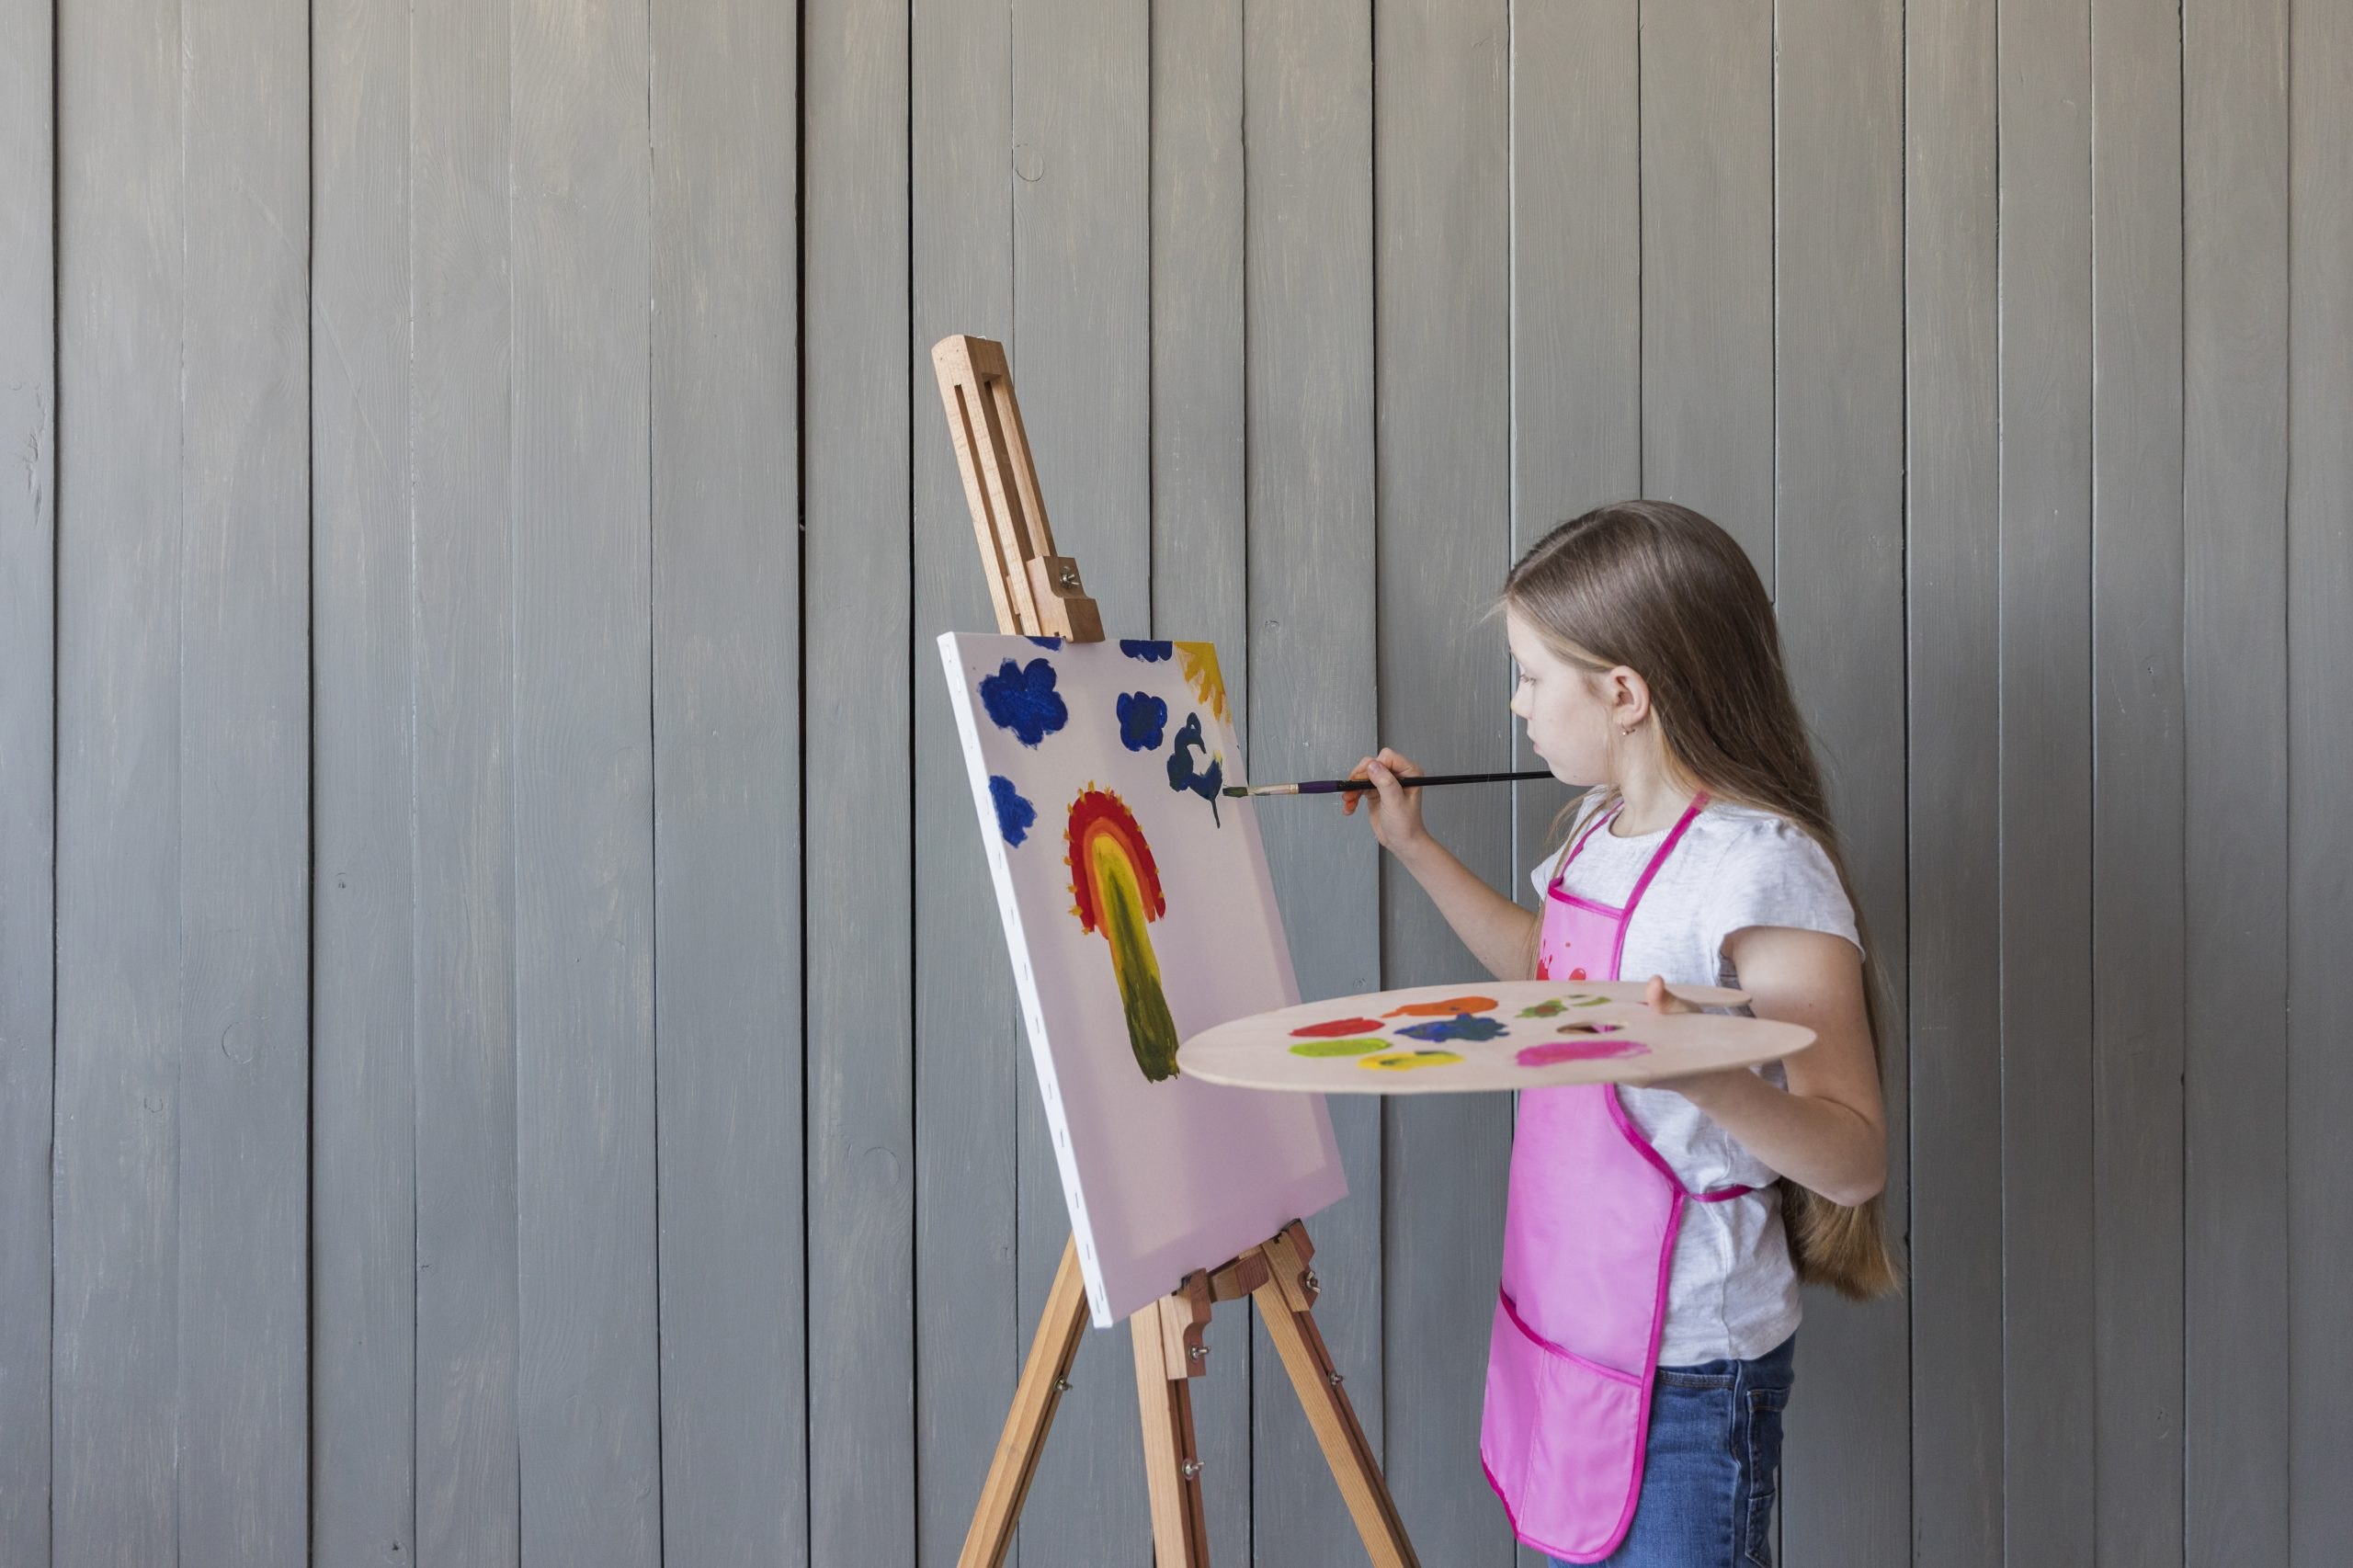 blonde-girl-painting-with-paint-brush